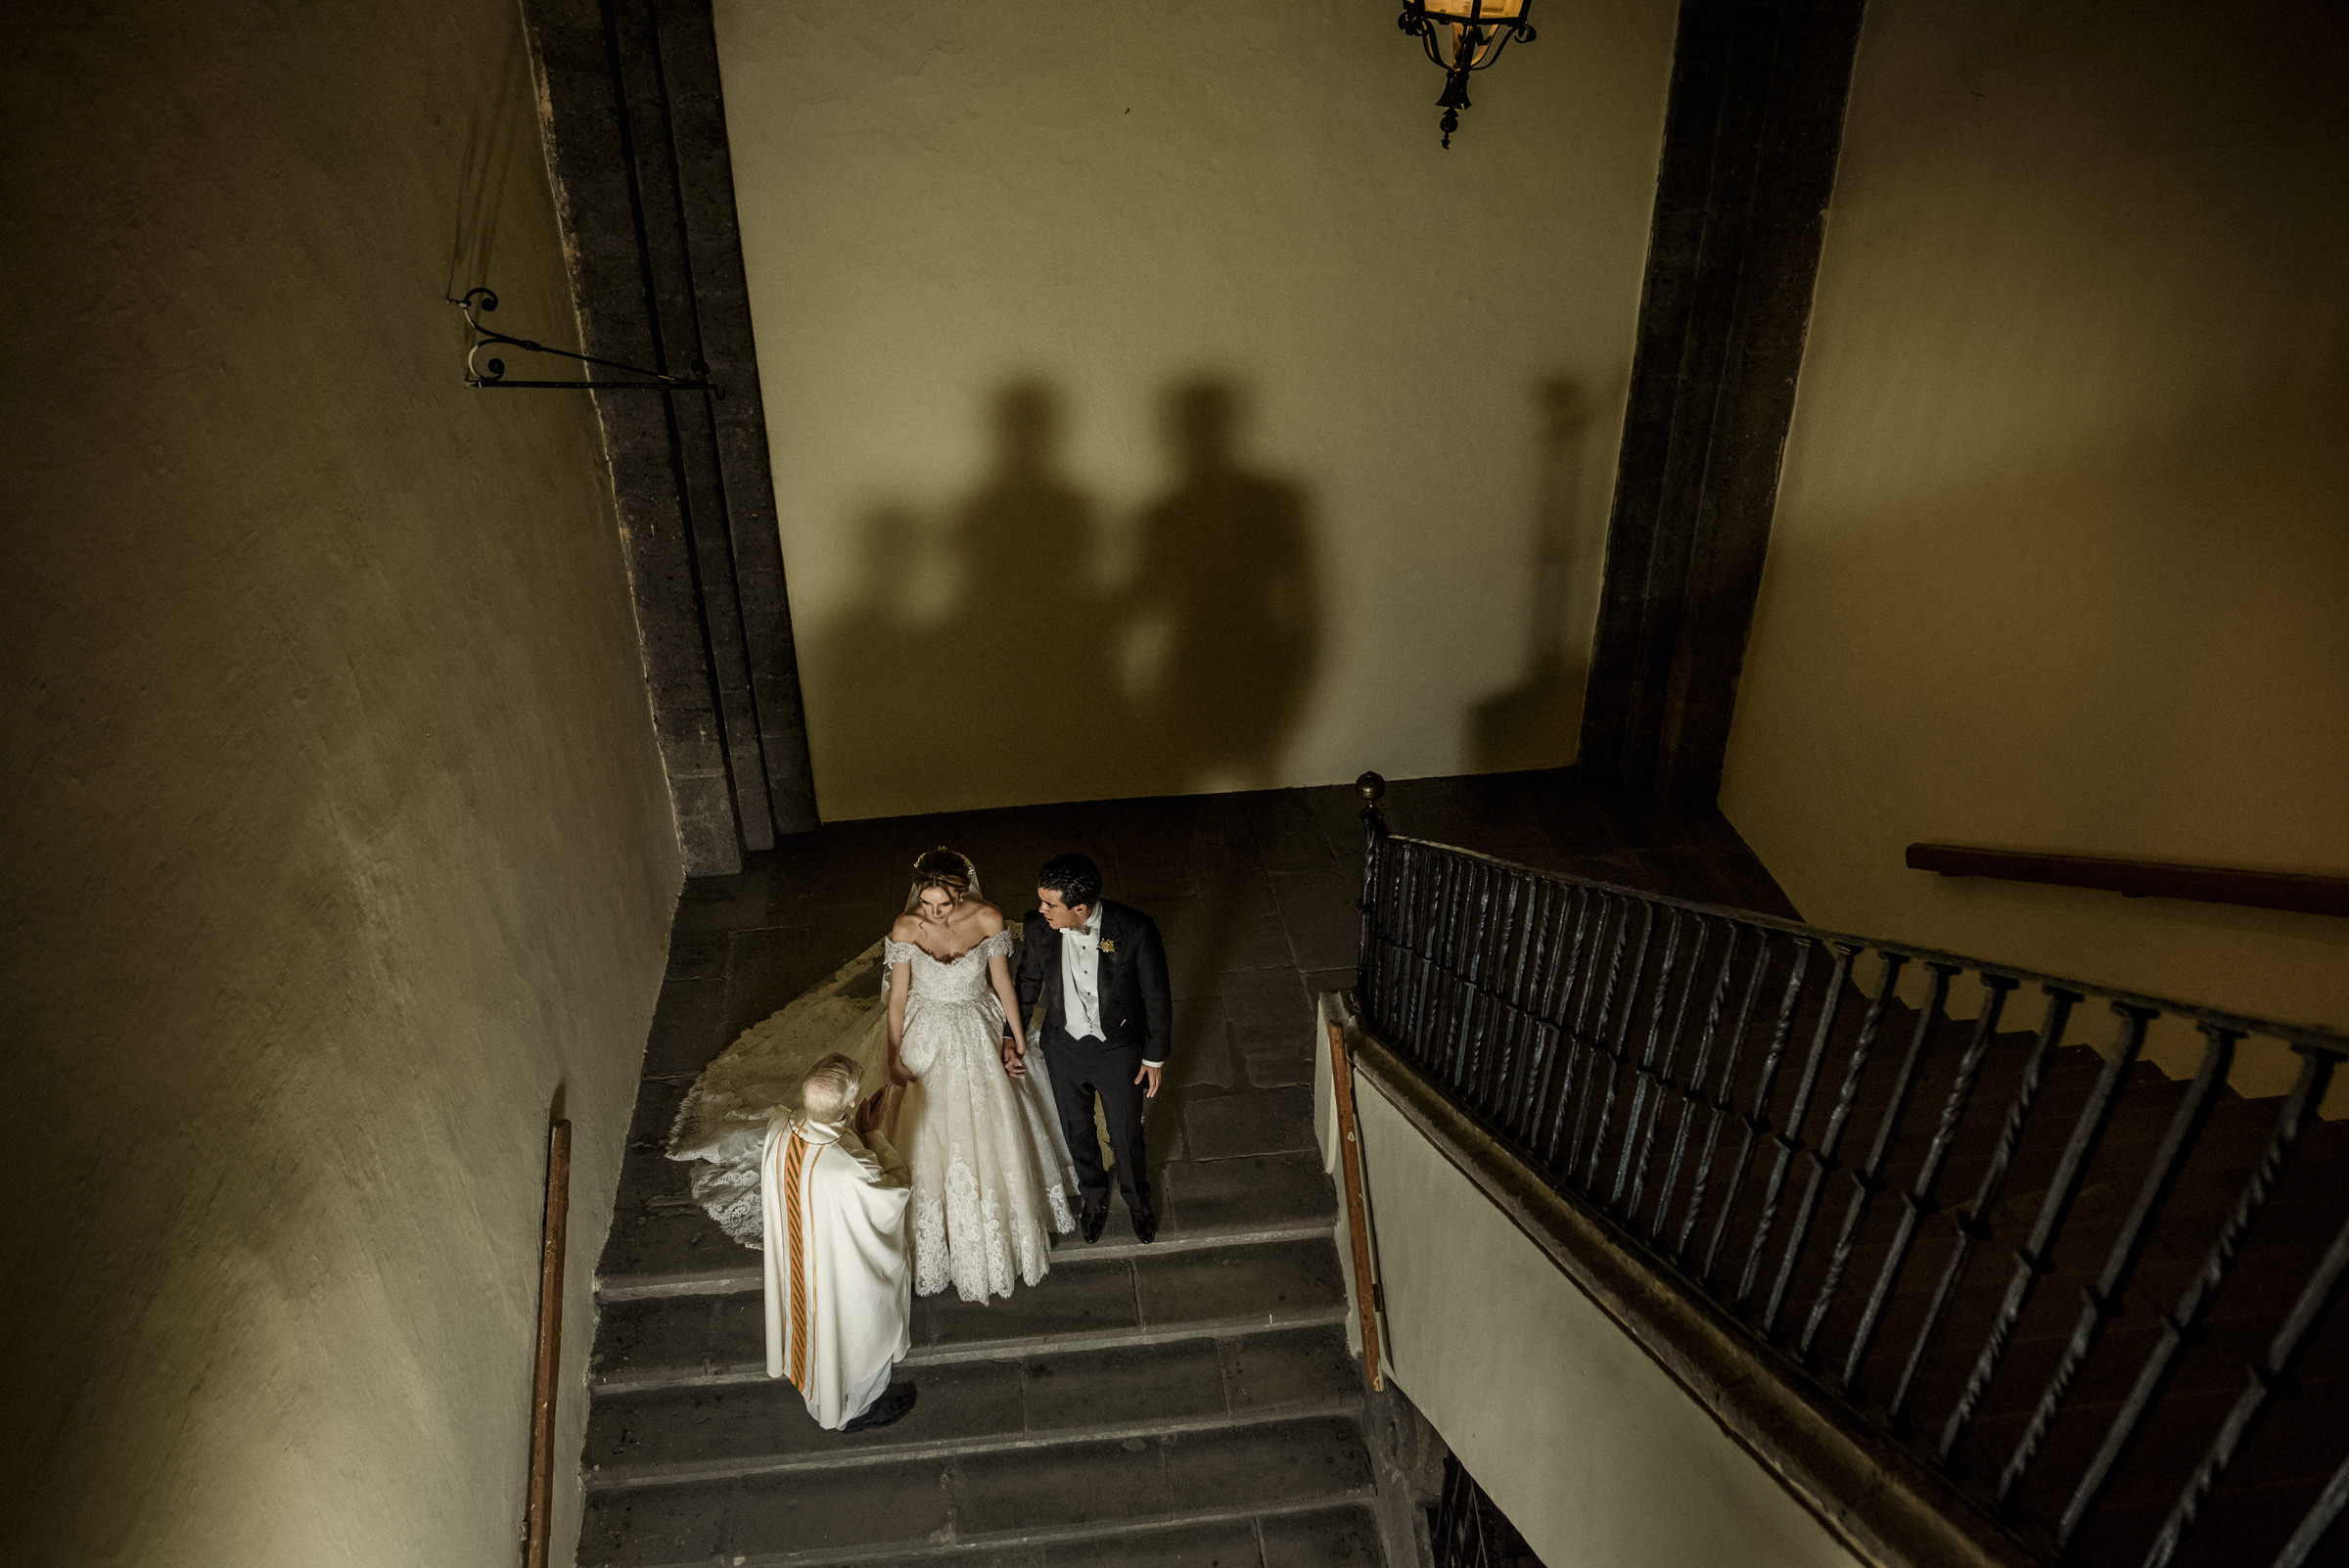 Bride and groom with priest on stairway - photo by El Marco Rojo